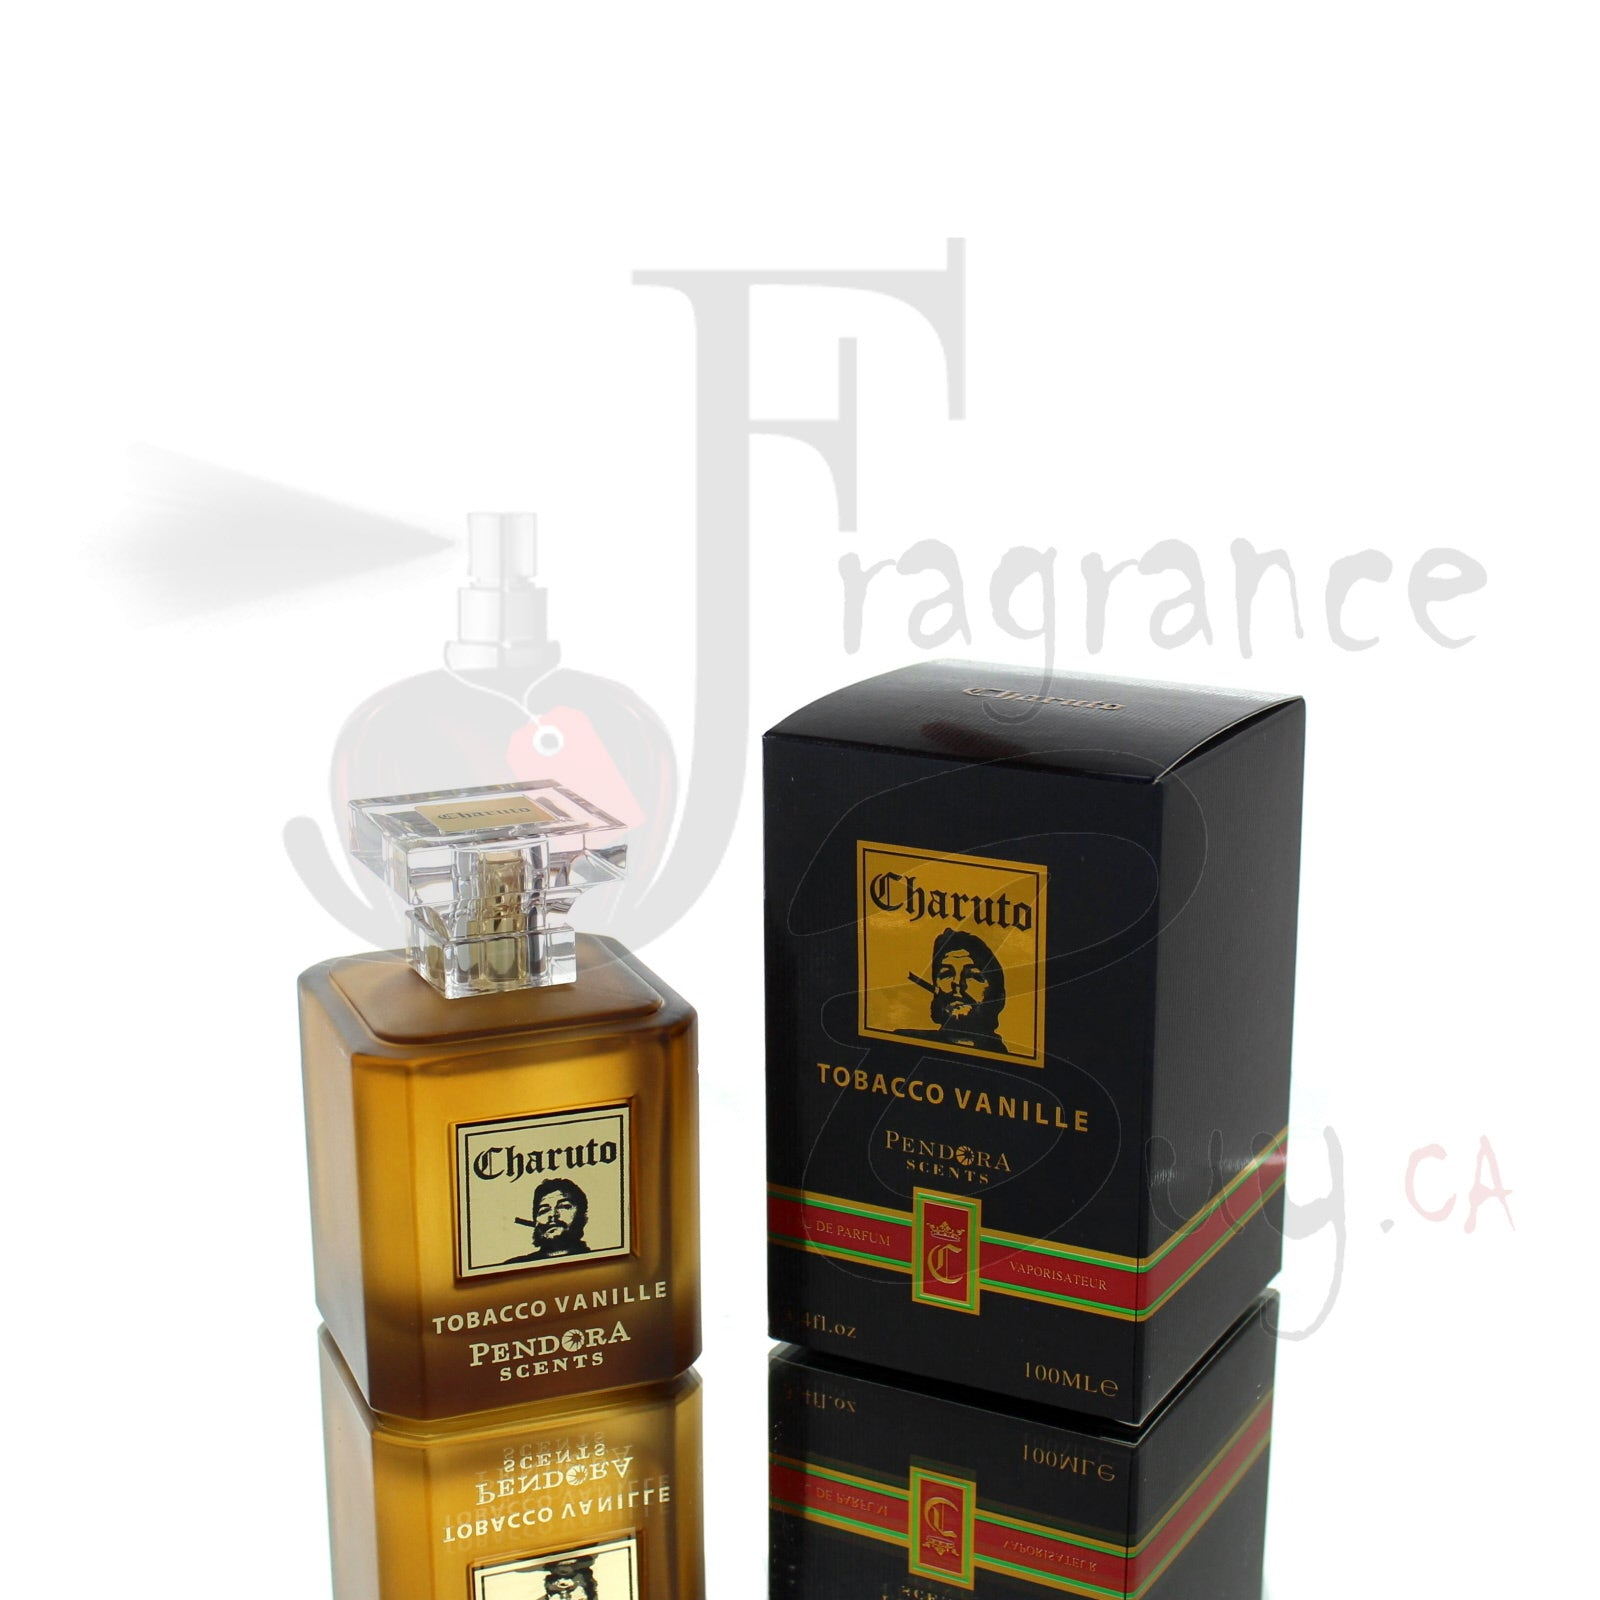 Paris Corner Charuto Tobacco Vanille For Man/Woman